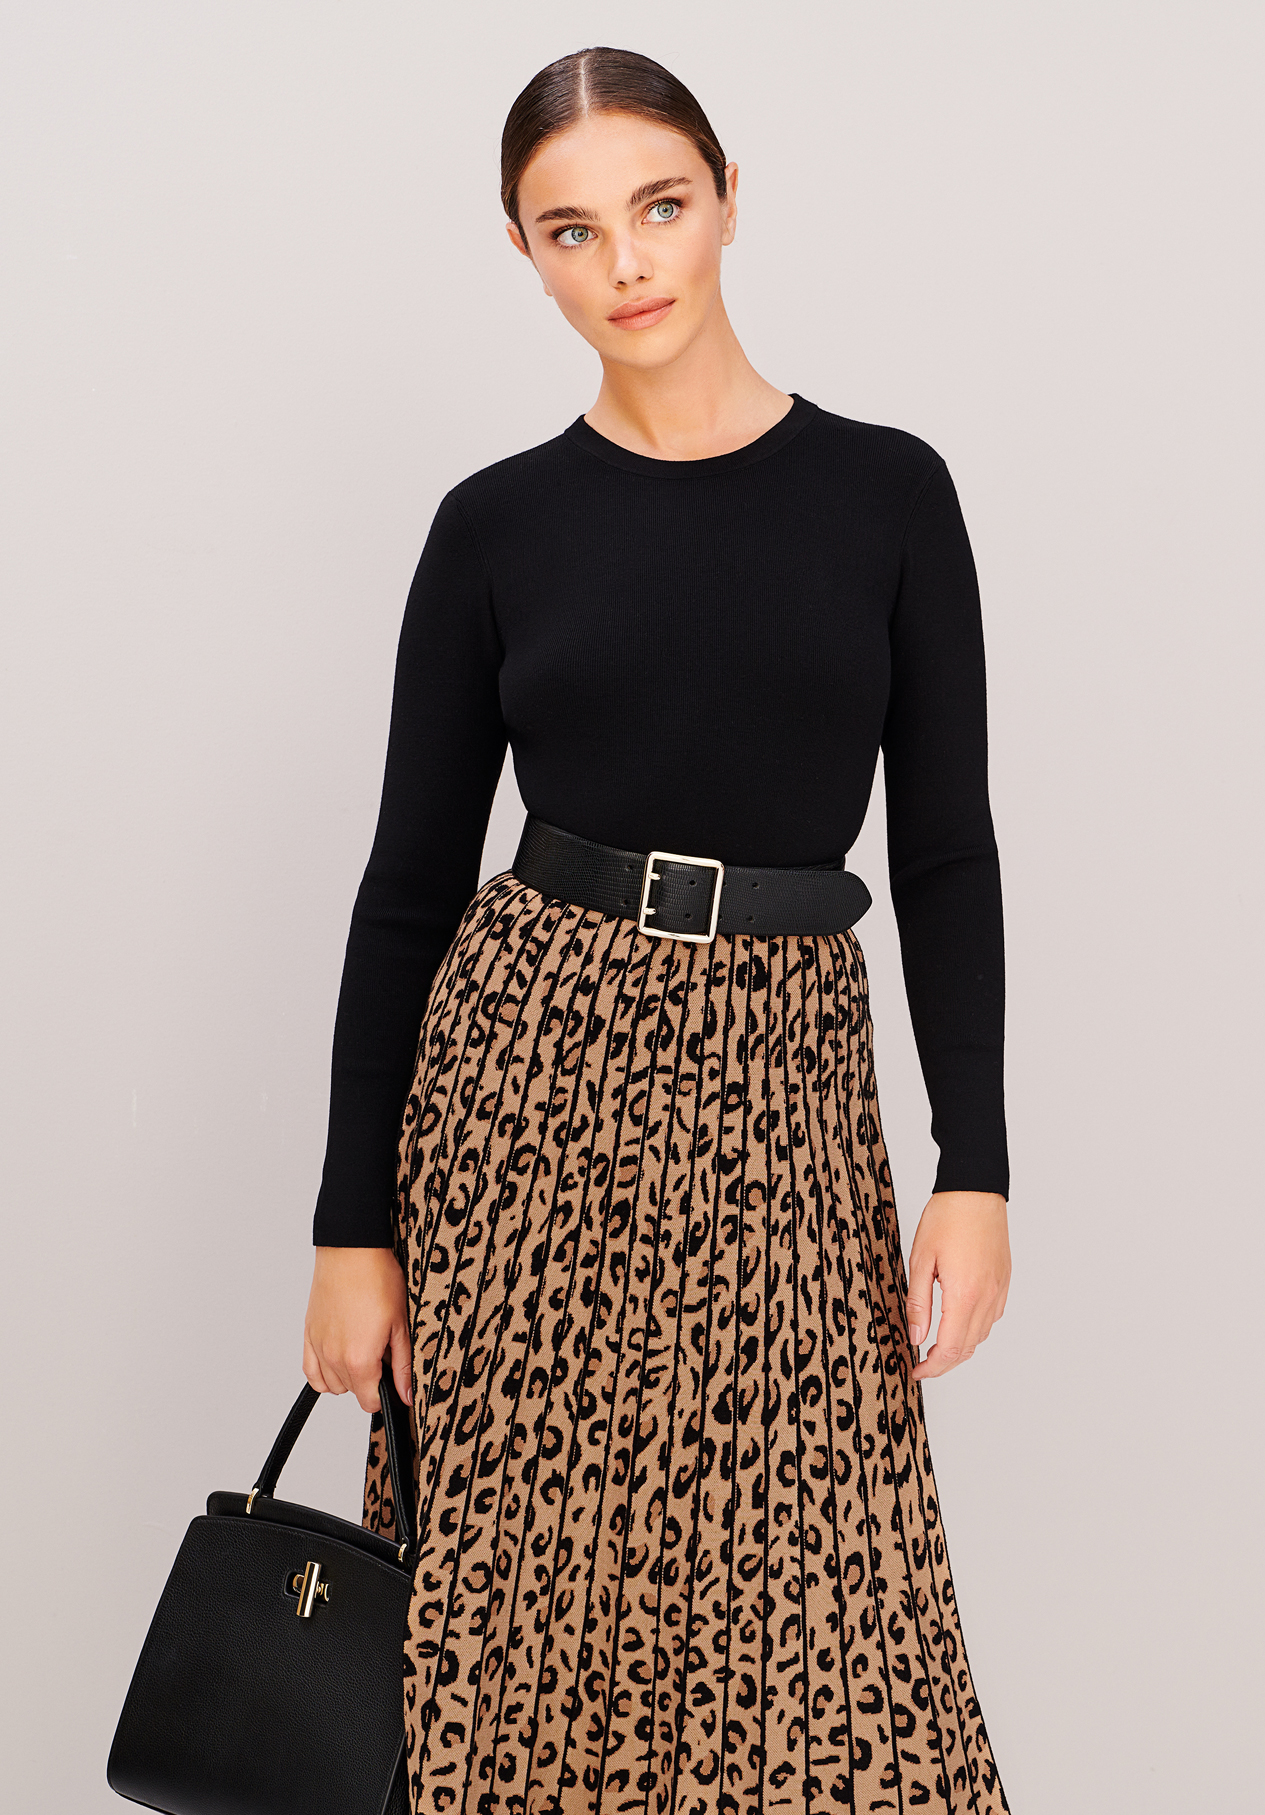 Model wears a knitted leopard print dress with a belt from Hobbs.